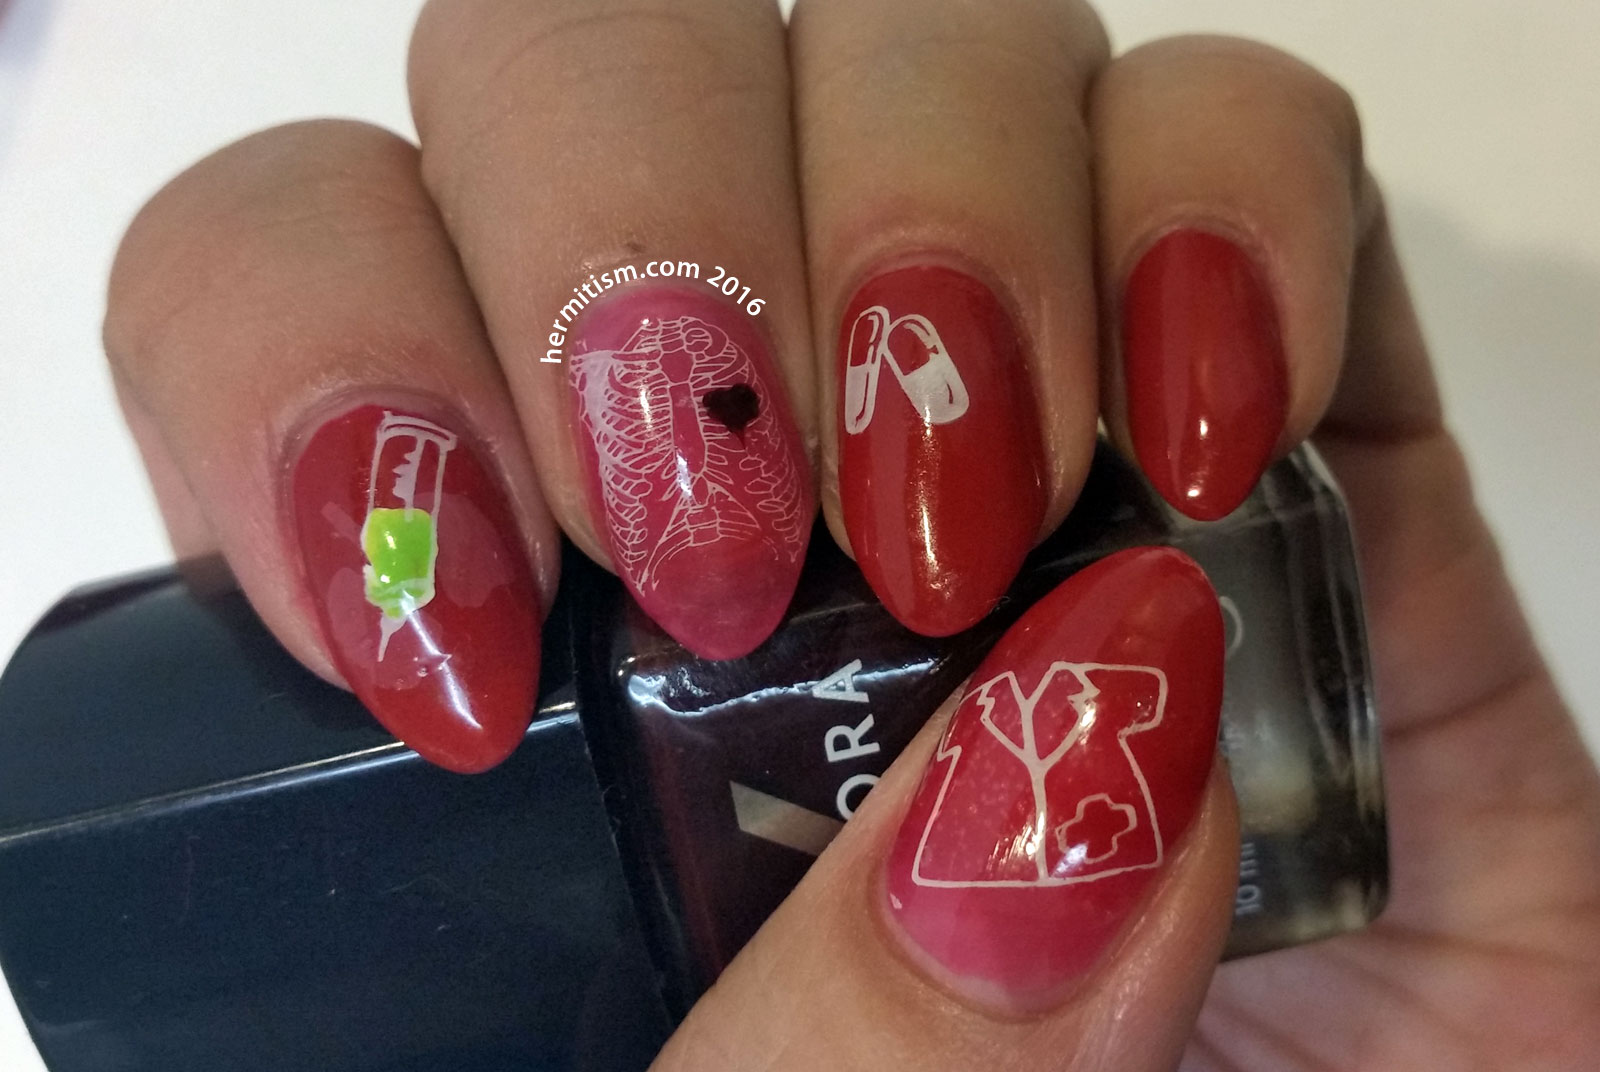 Q is for Quack - ABC Nail Art Challenge - 31 Day Challenge (Red) - Hermit Werds